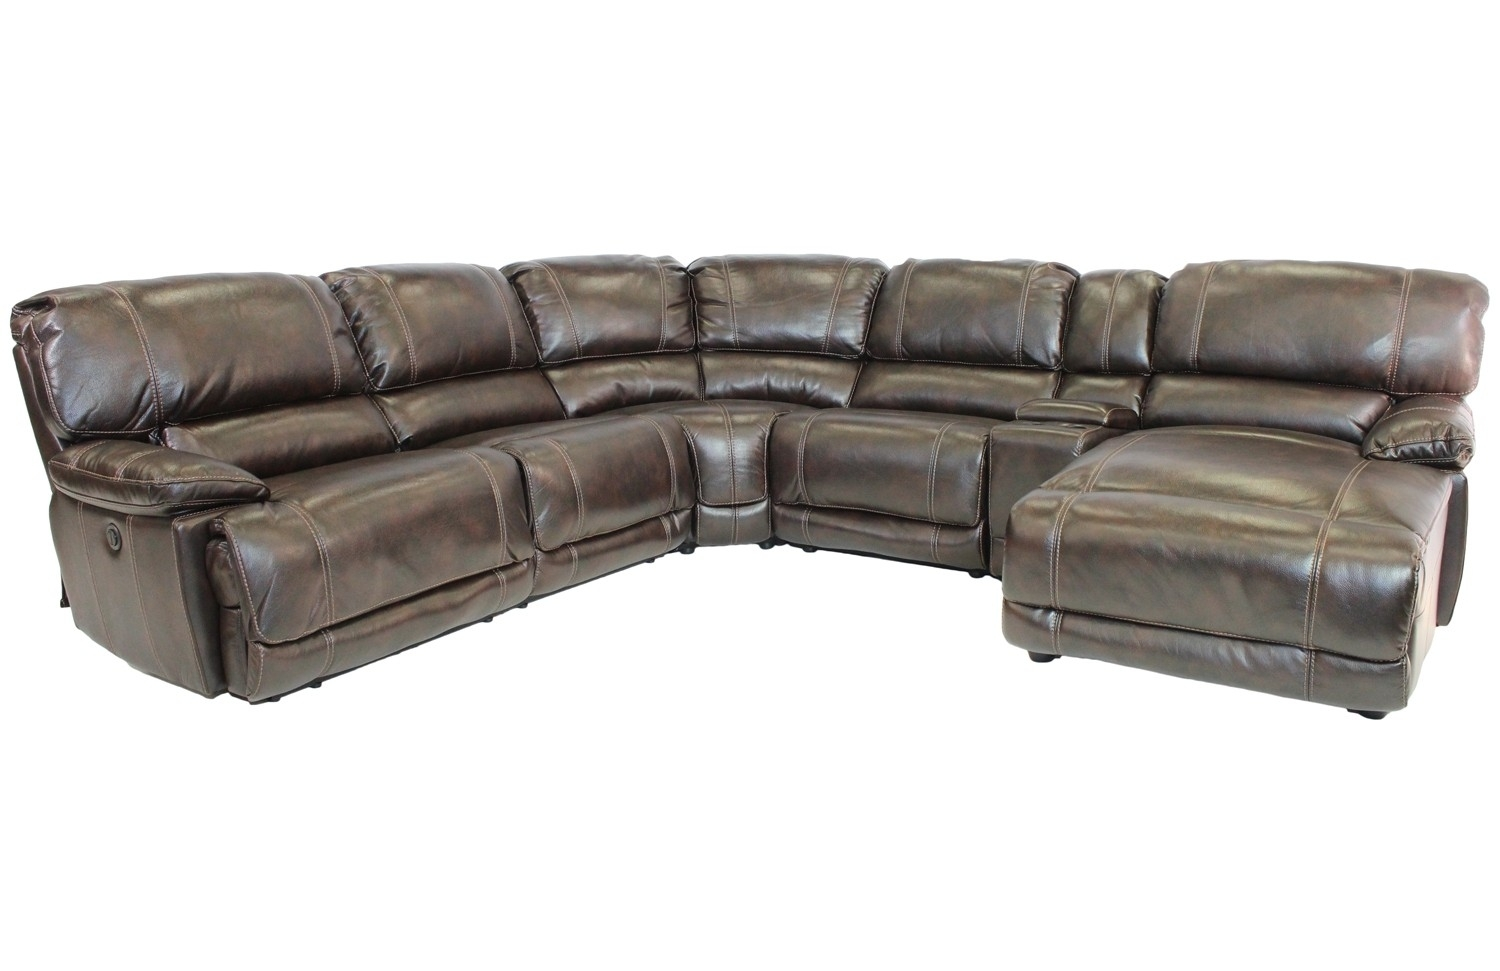 Sectional Sofas | Save Mor Online And In Store With Regard To Meyer 3 Piece Sectionals With Raf Chaise (Image 22 of 25)